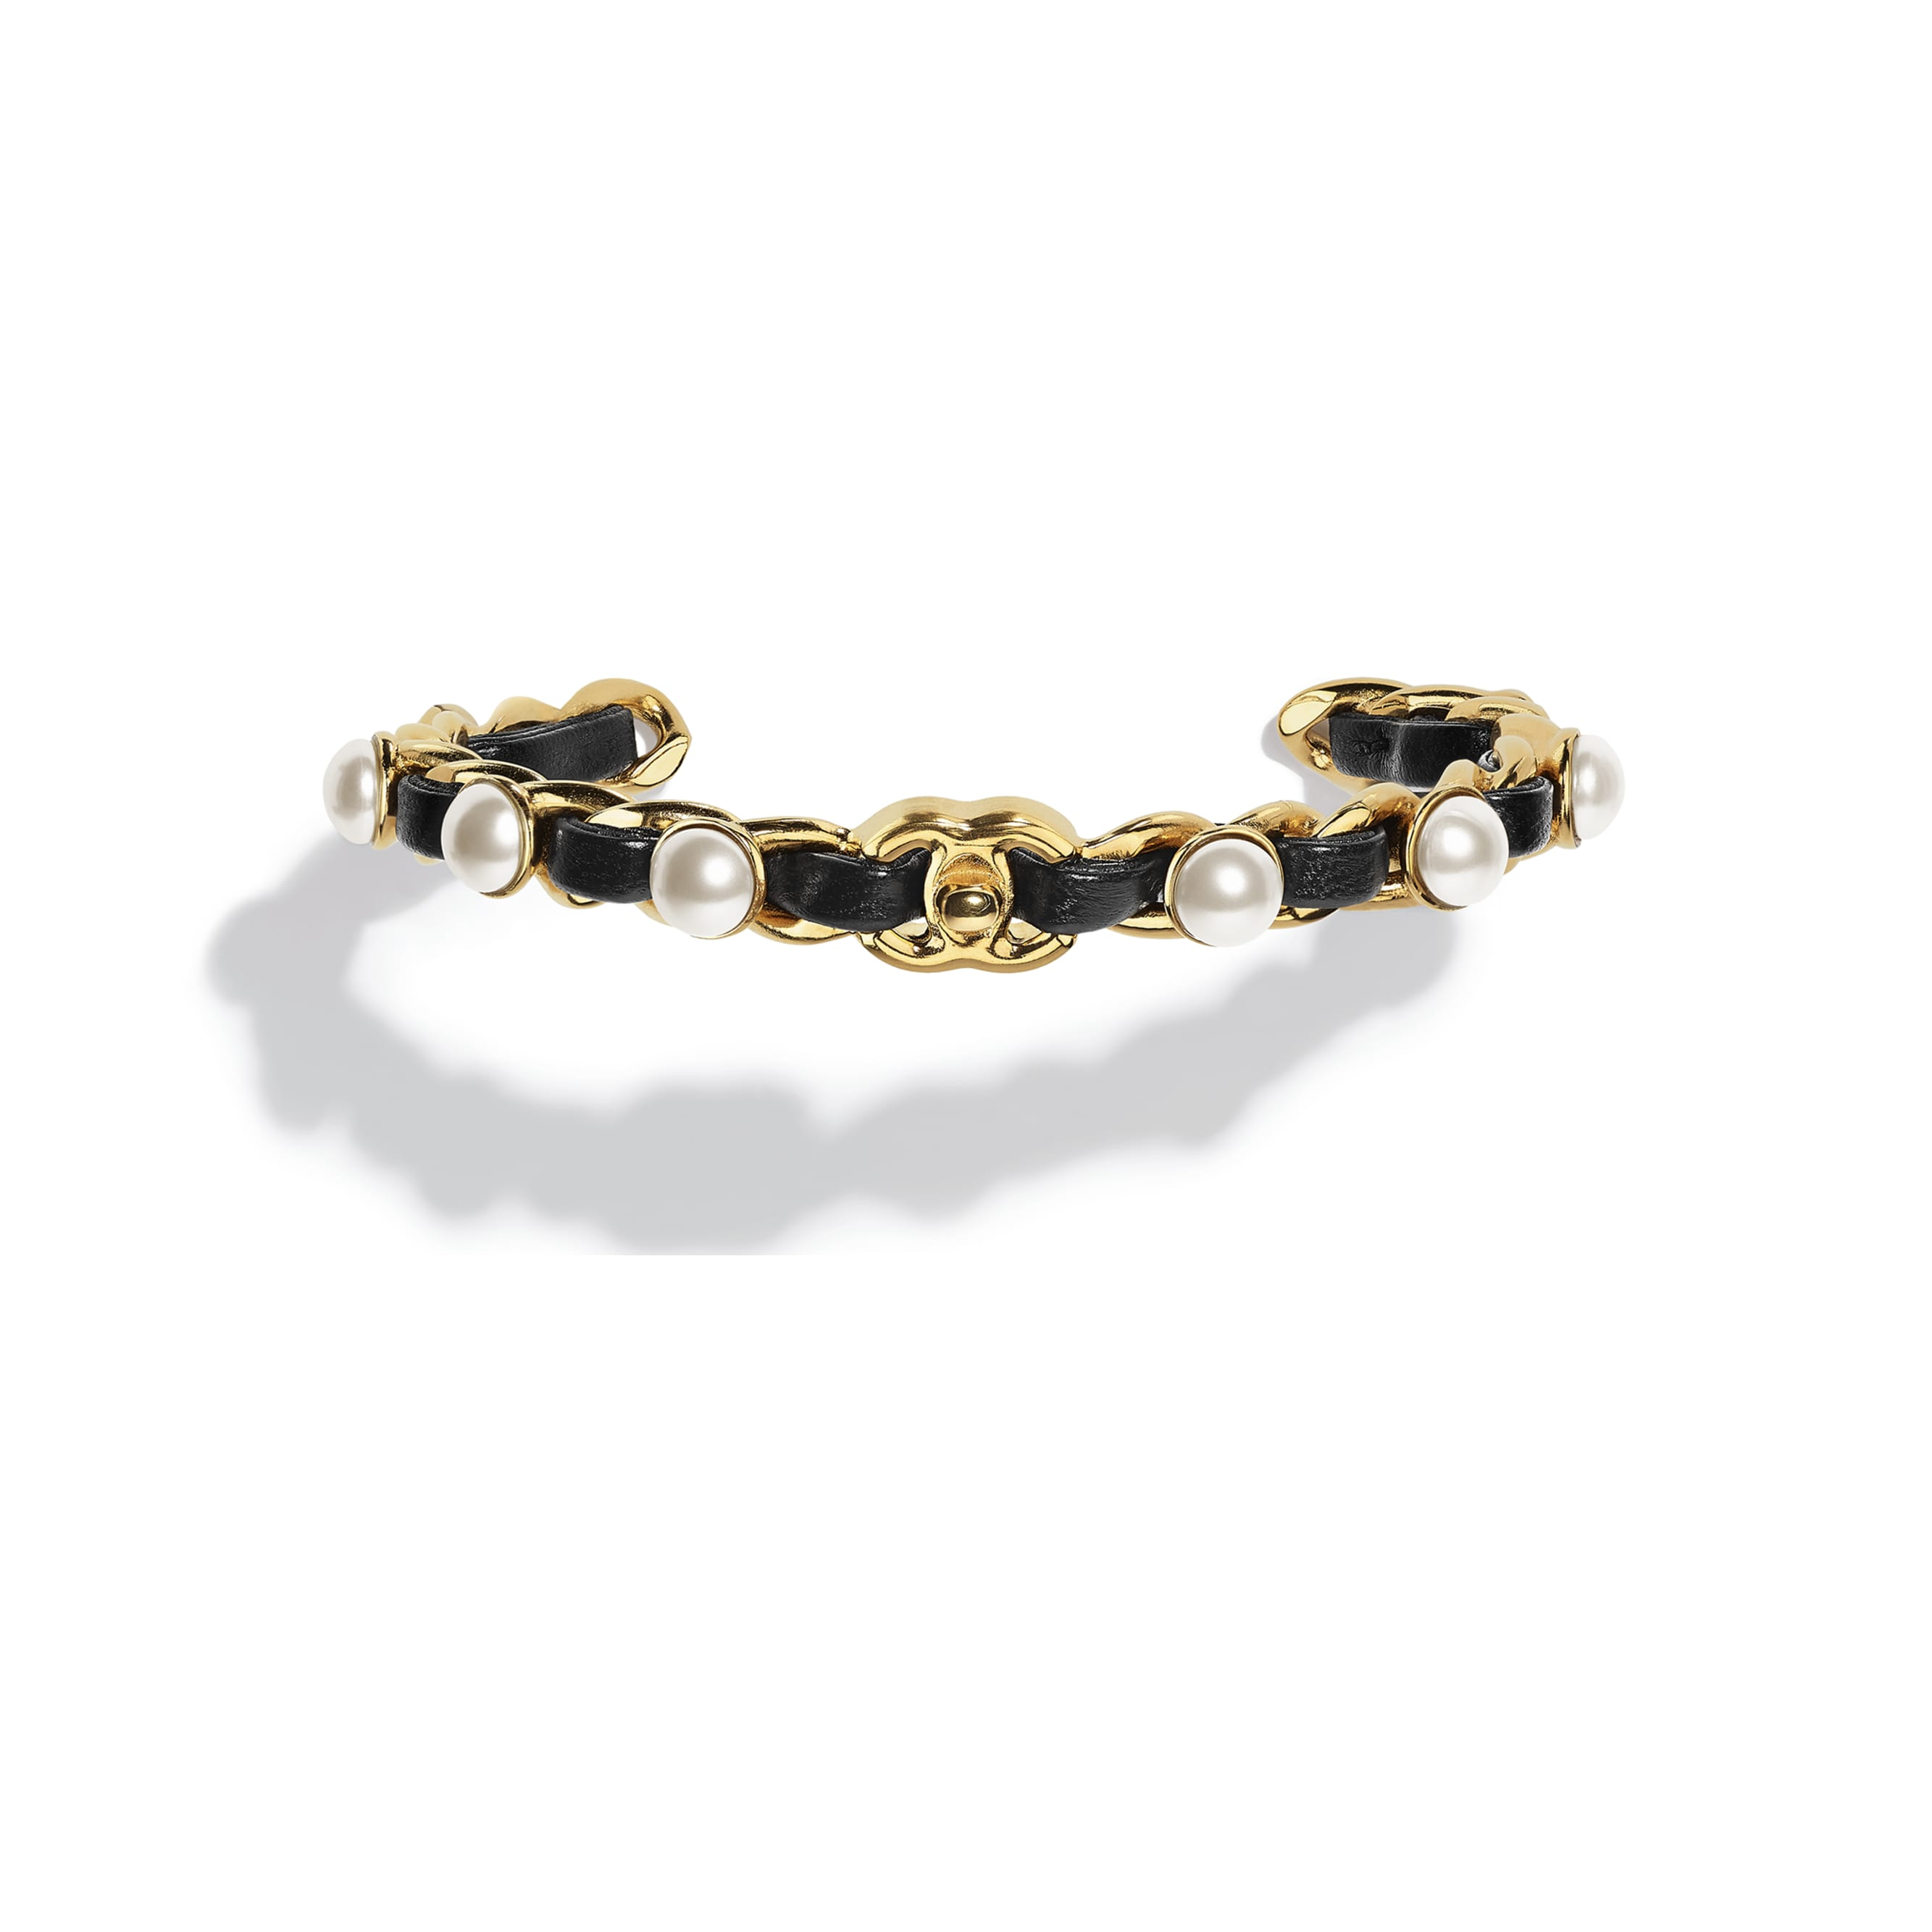 Cuff - Gold, Pearly White & Black - Metal, Glass Pearls & Lambskin - CHANEL - Default view - see standard sized version